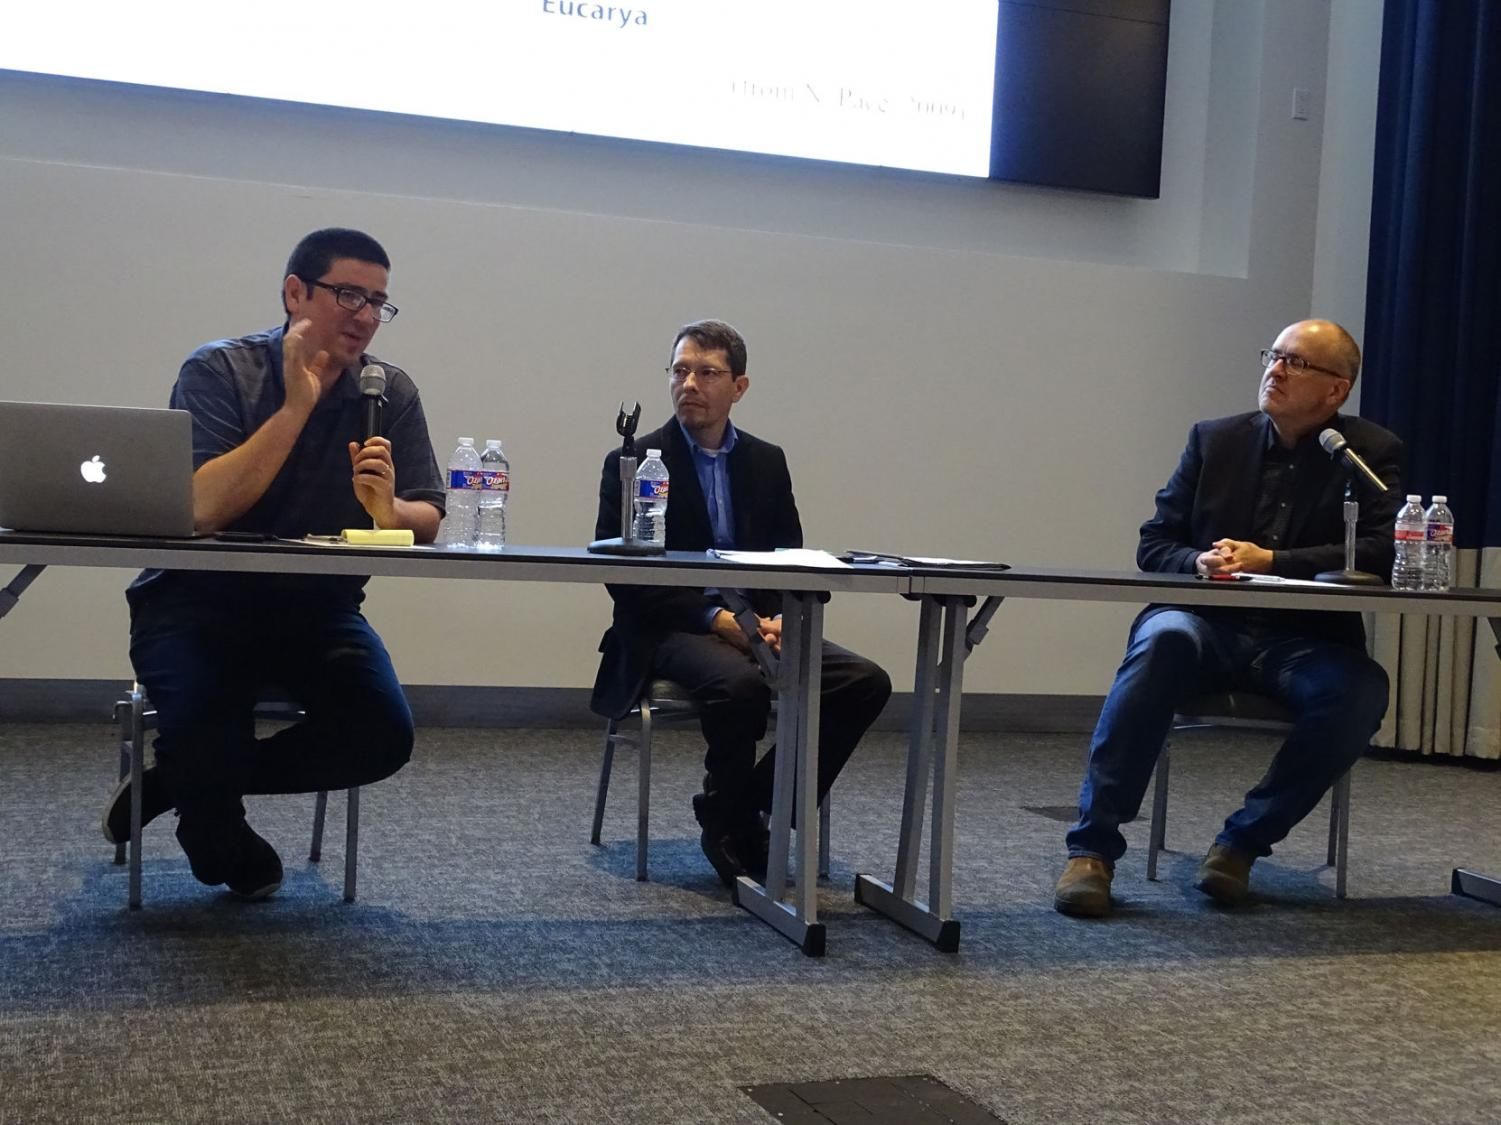 Joel Velasco, left, Stephen Dilley, center, and Paul Nelson, right, at a debate about Darwin's evolution theory Oct. 21.